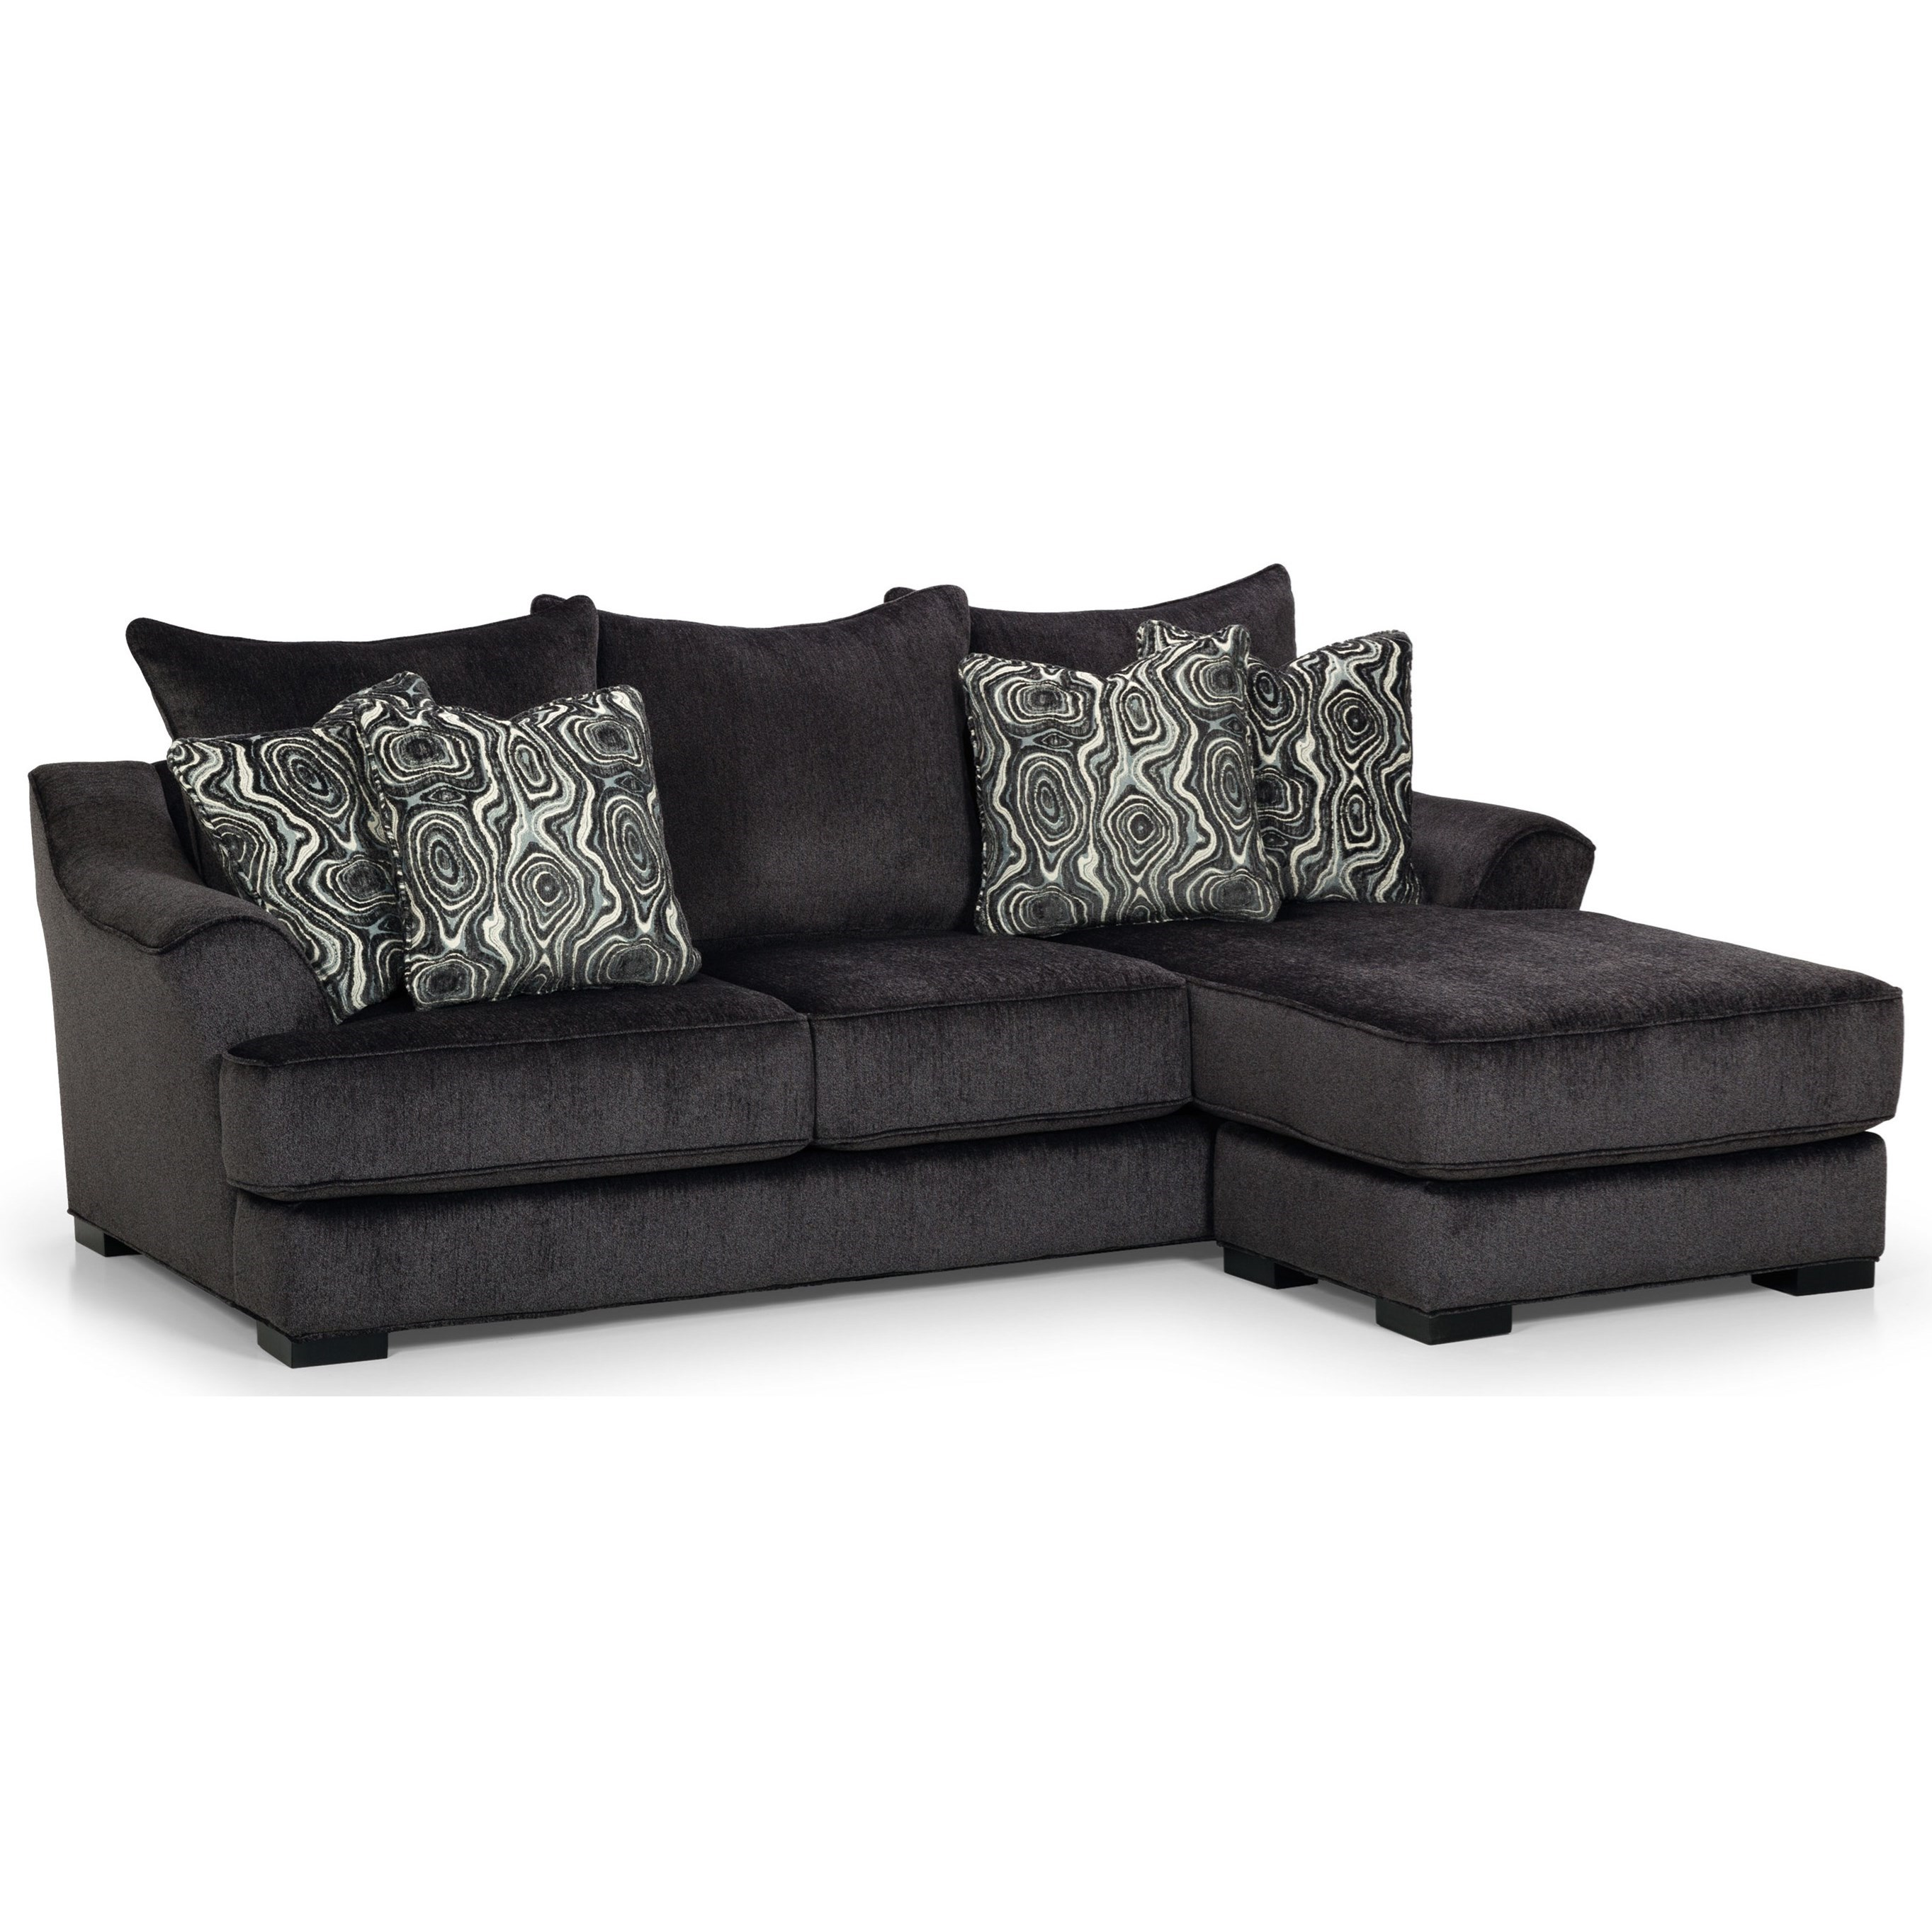 474 Sofa by Stanton at Rife's Home Furniture